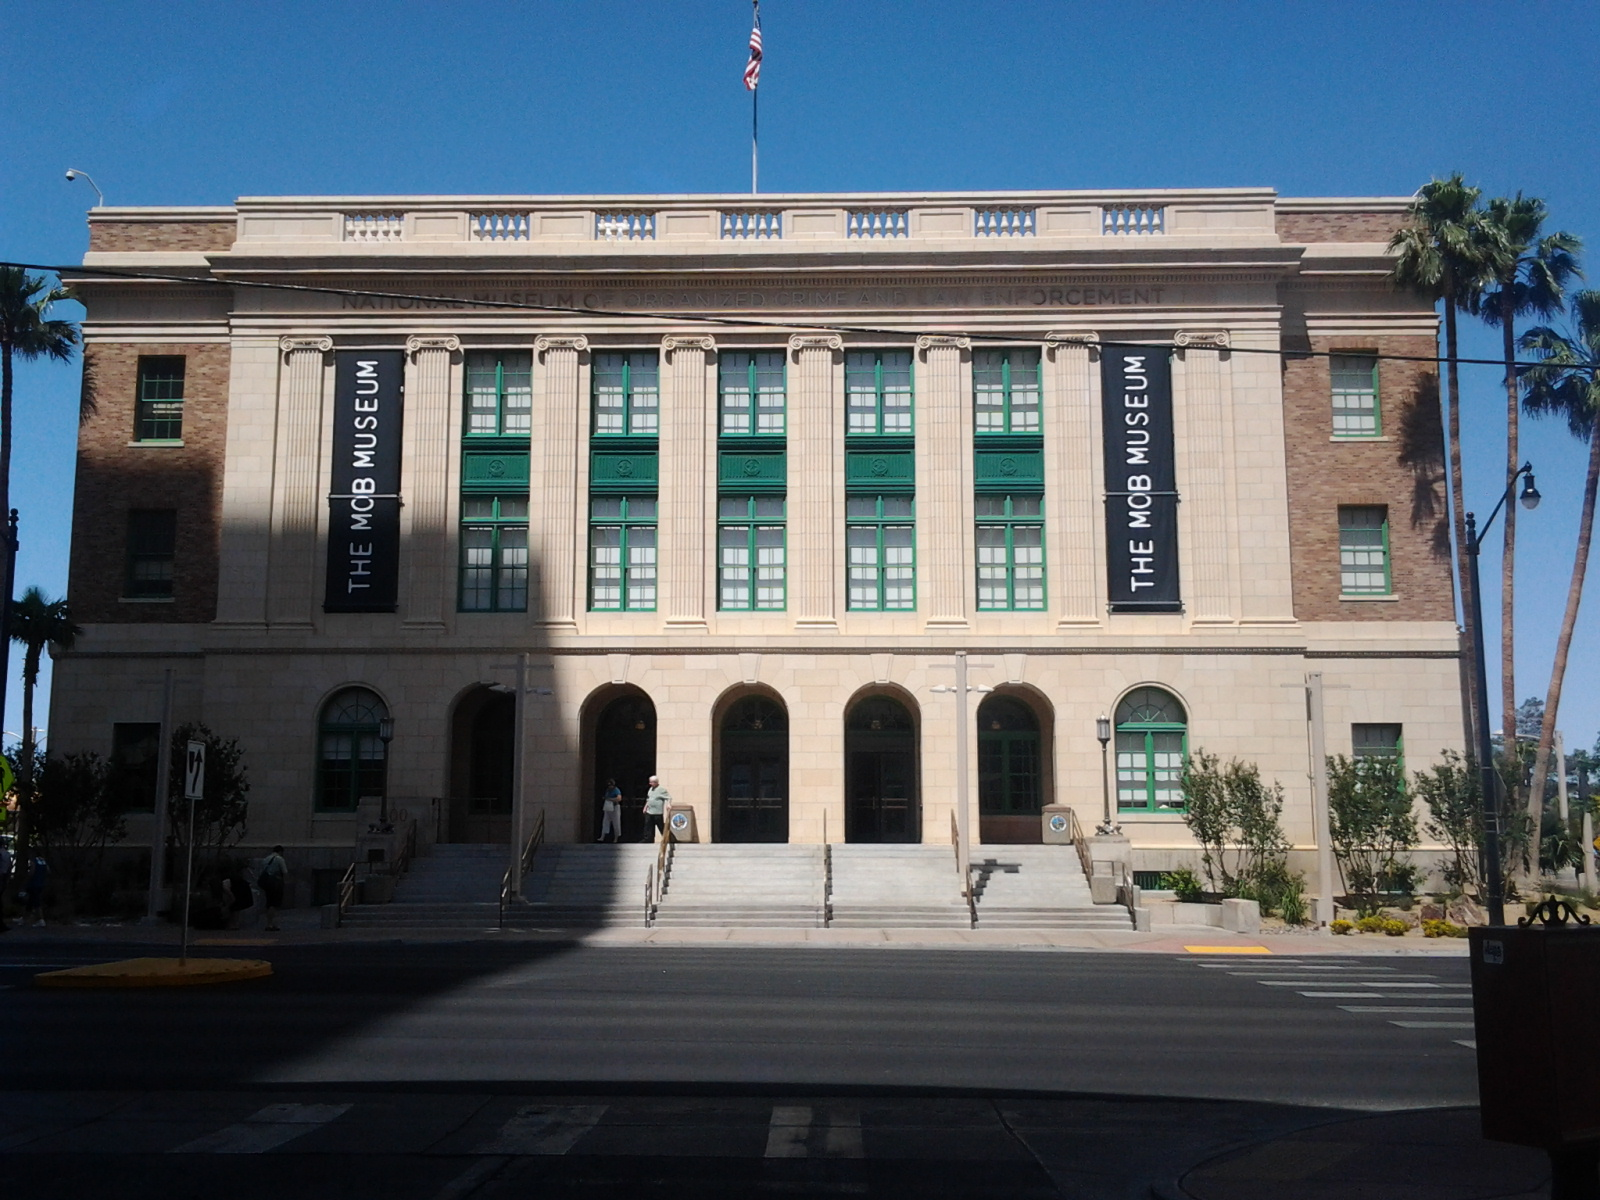 The Mob Museum - Things That You Should Not Miss in Las Vegas